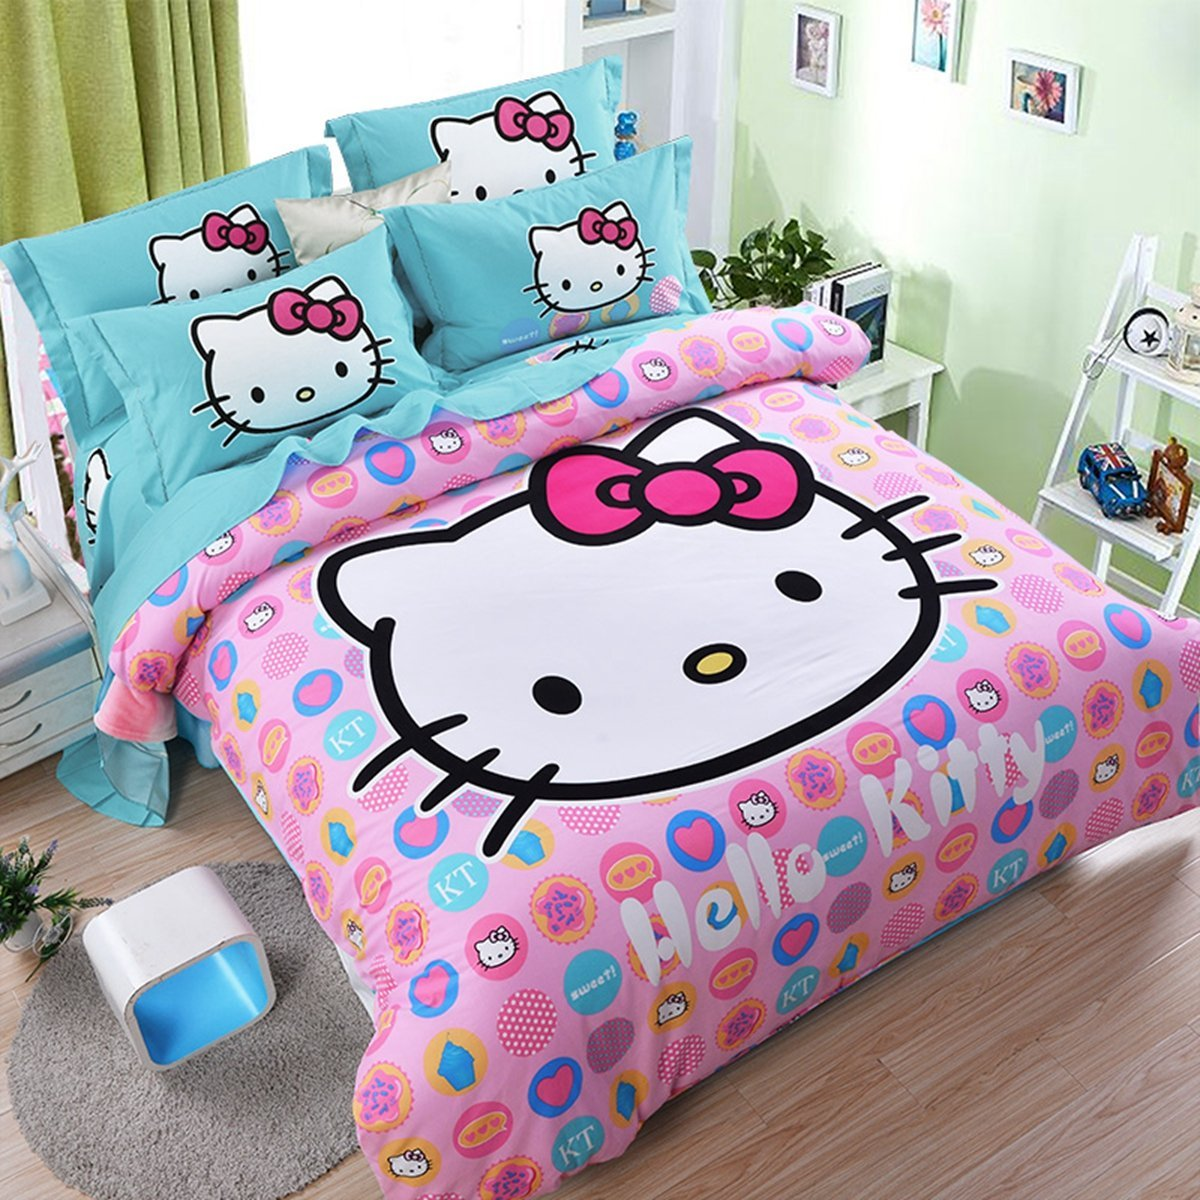 10 Best Hello Kitty Bedding Sets,Rhode Island Beach Rentals Oceanfront